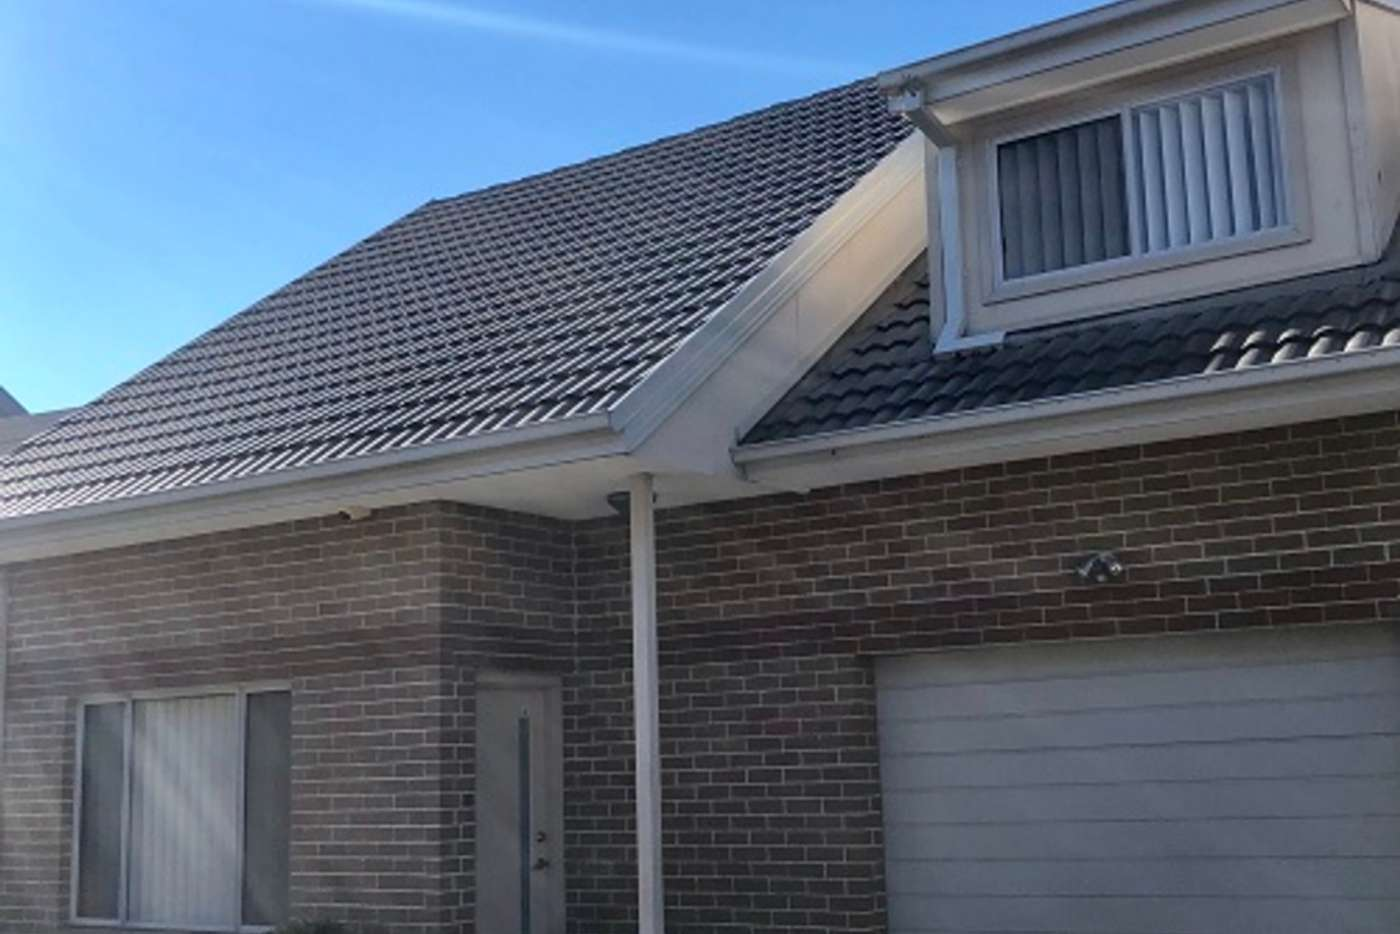 Main view of Homely townhouse listing, 4/34-36 Canberra Street, Oxley Park NSW 2760